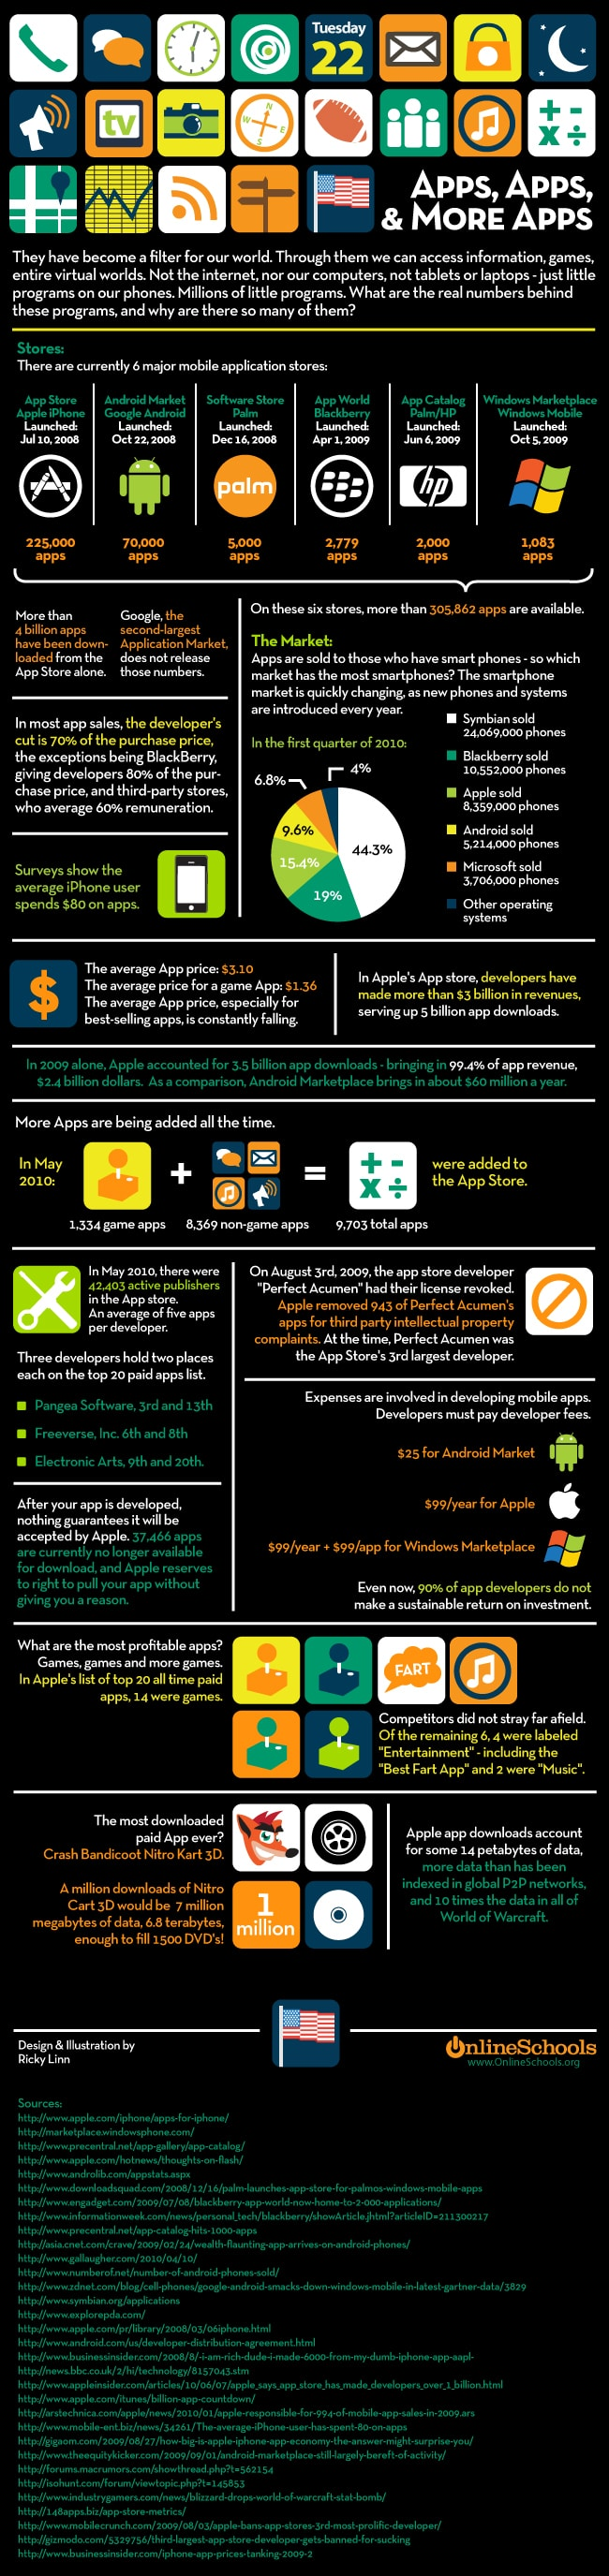 6 Major App Stores Compared [Infographic]